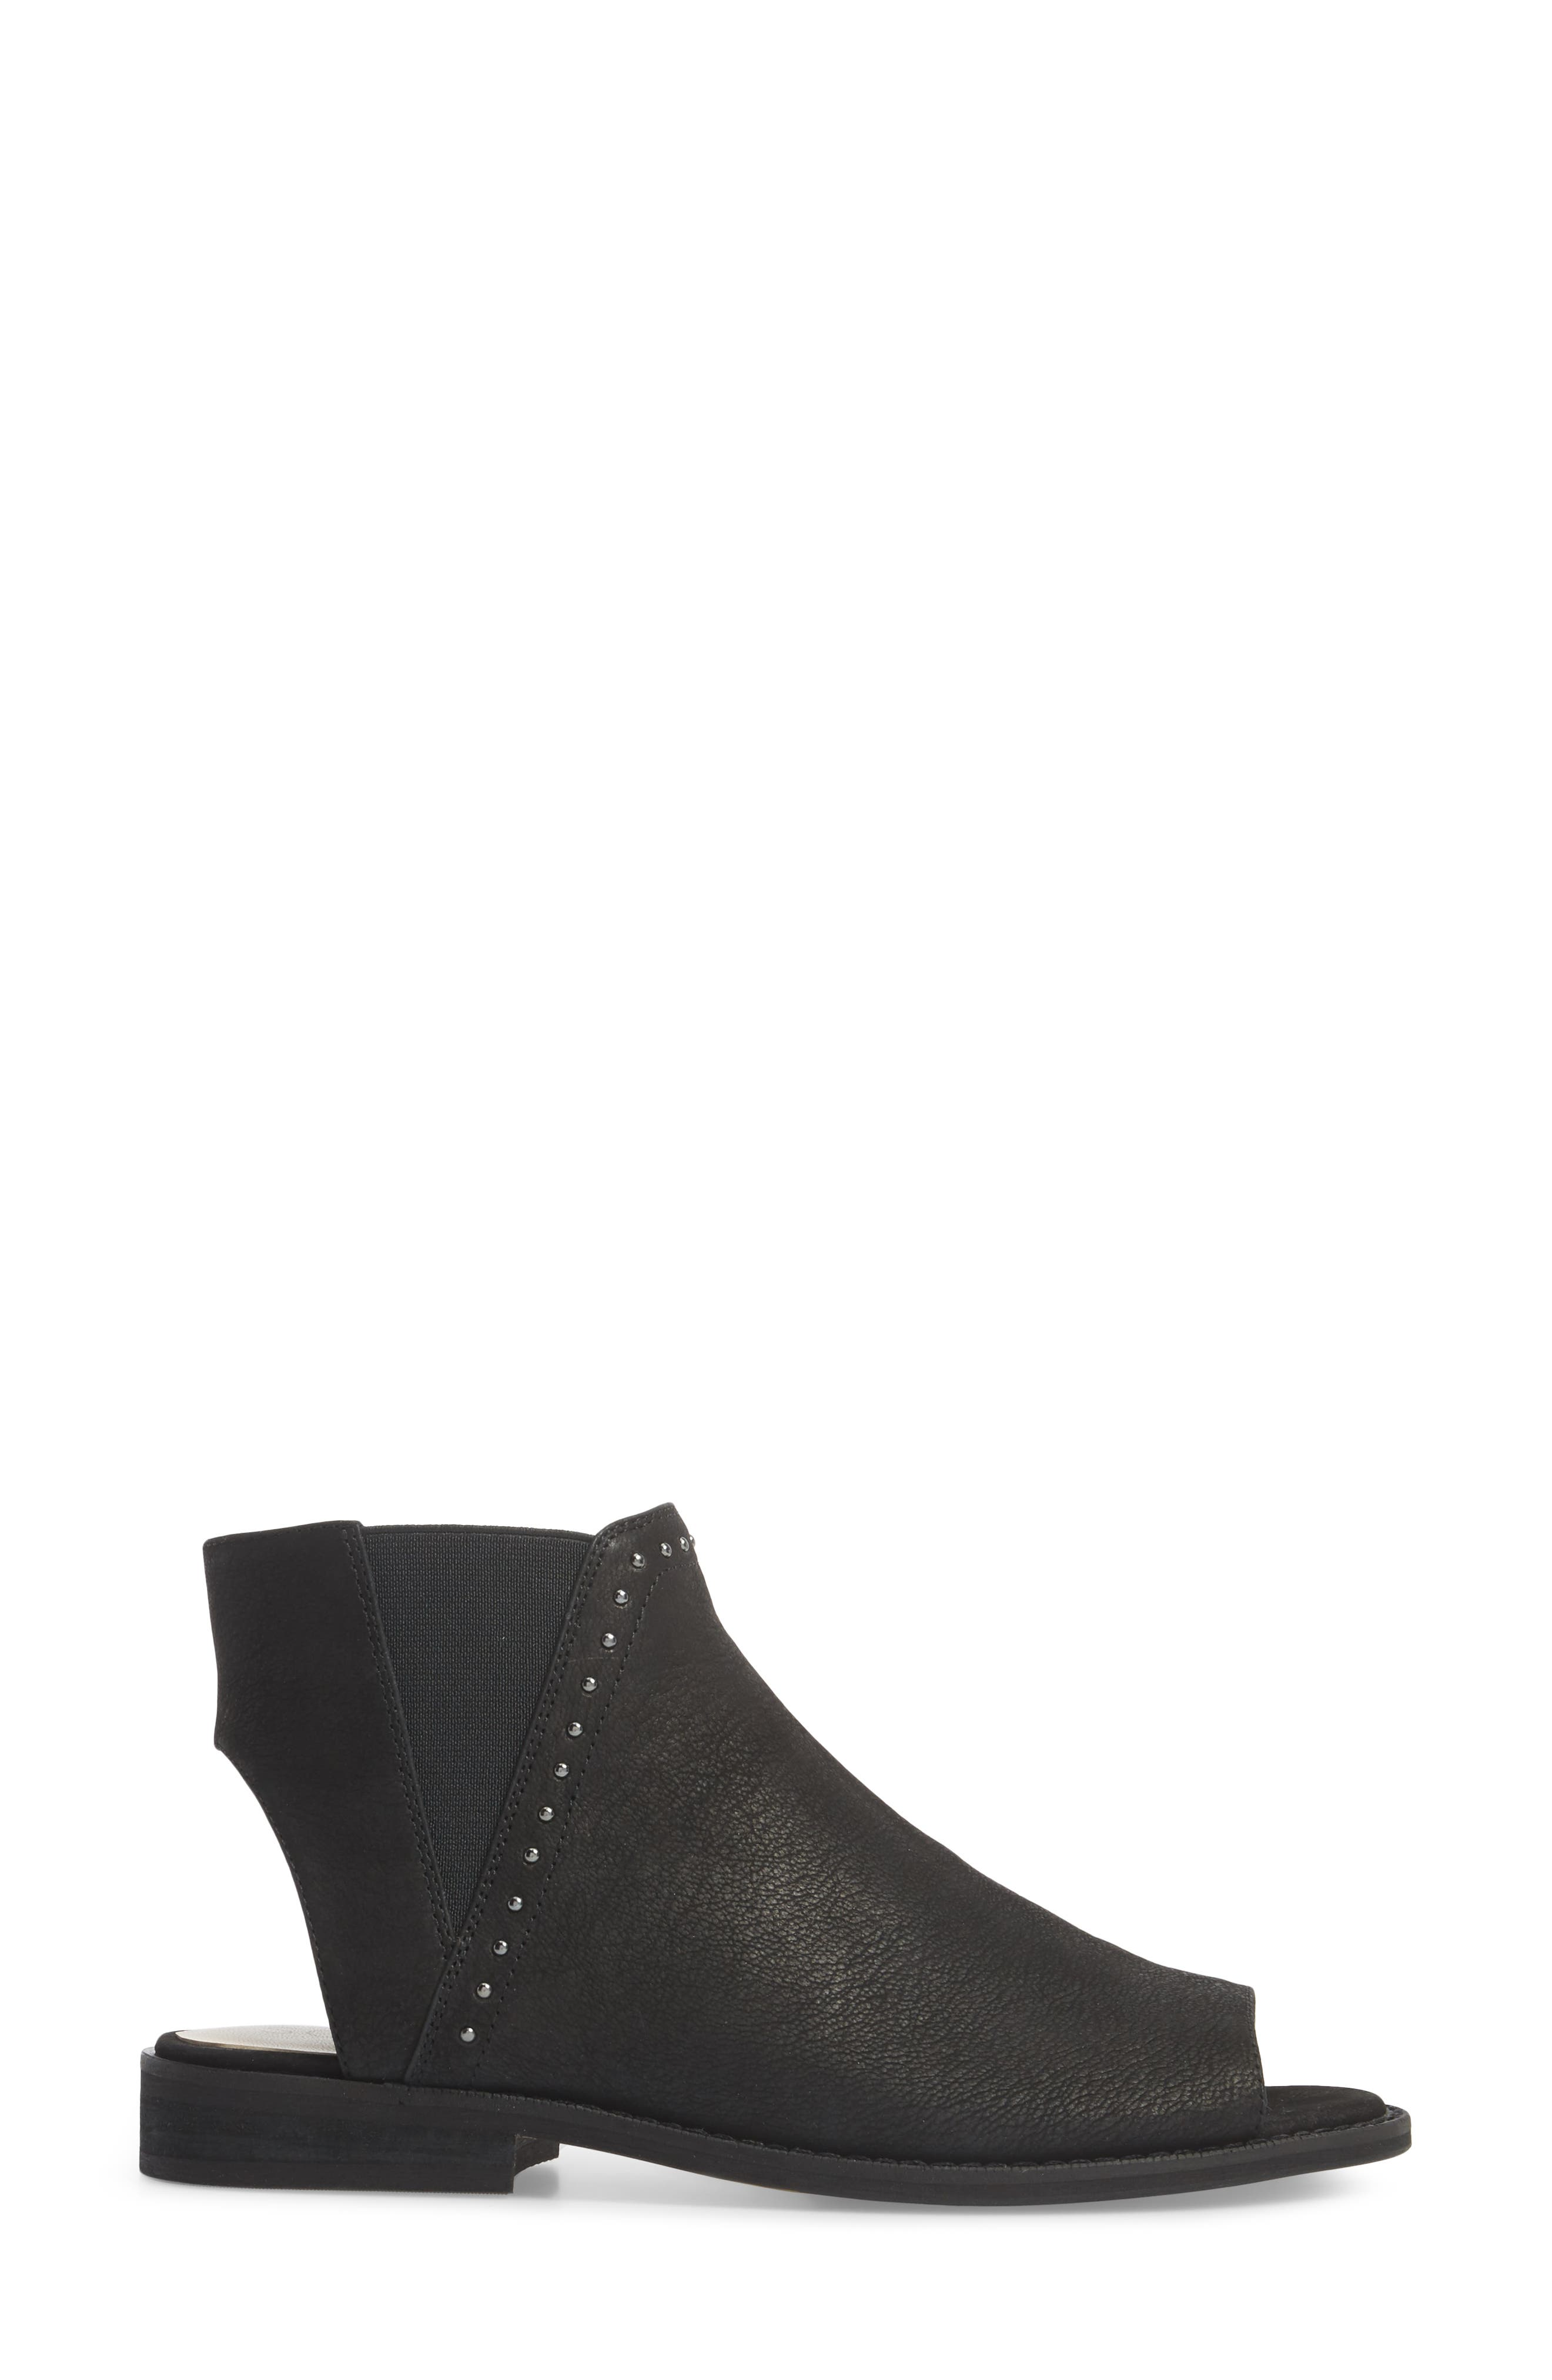 SOLE SOCIETY, Birty Bootie, Alternate thumbnail 3, color, BLACK